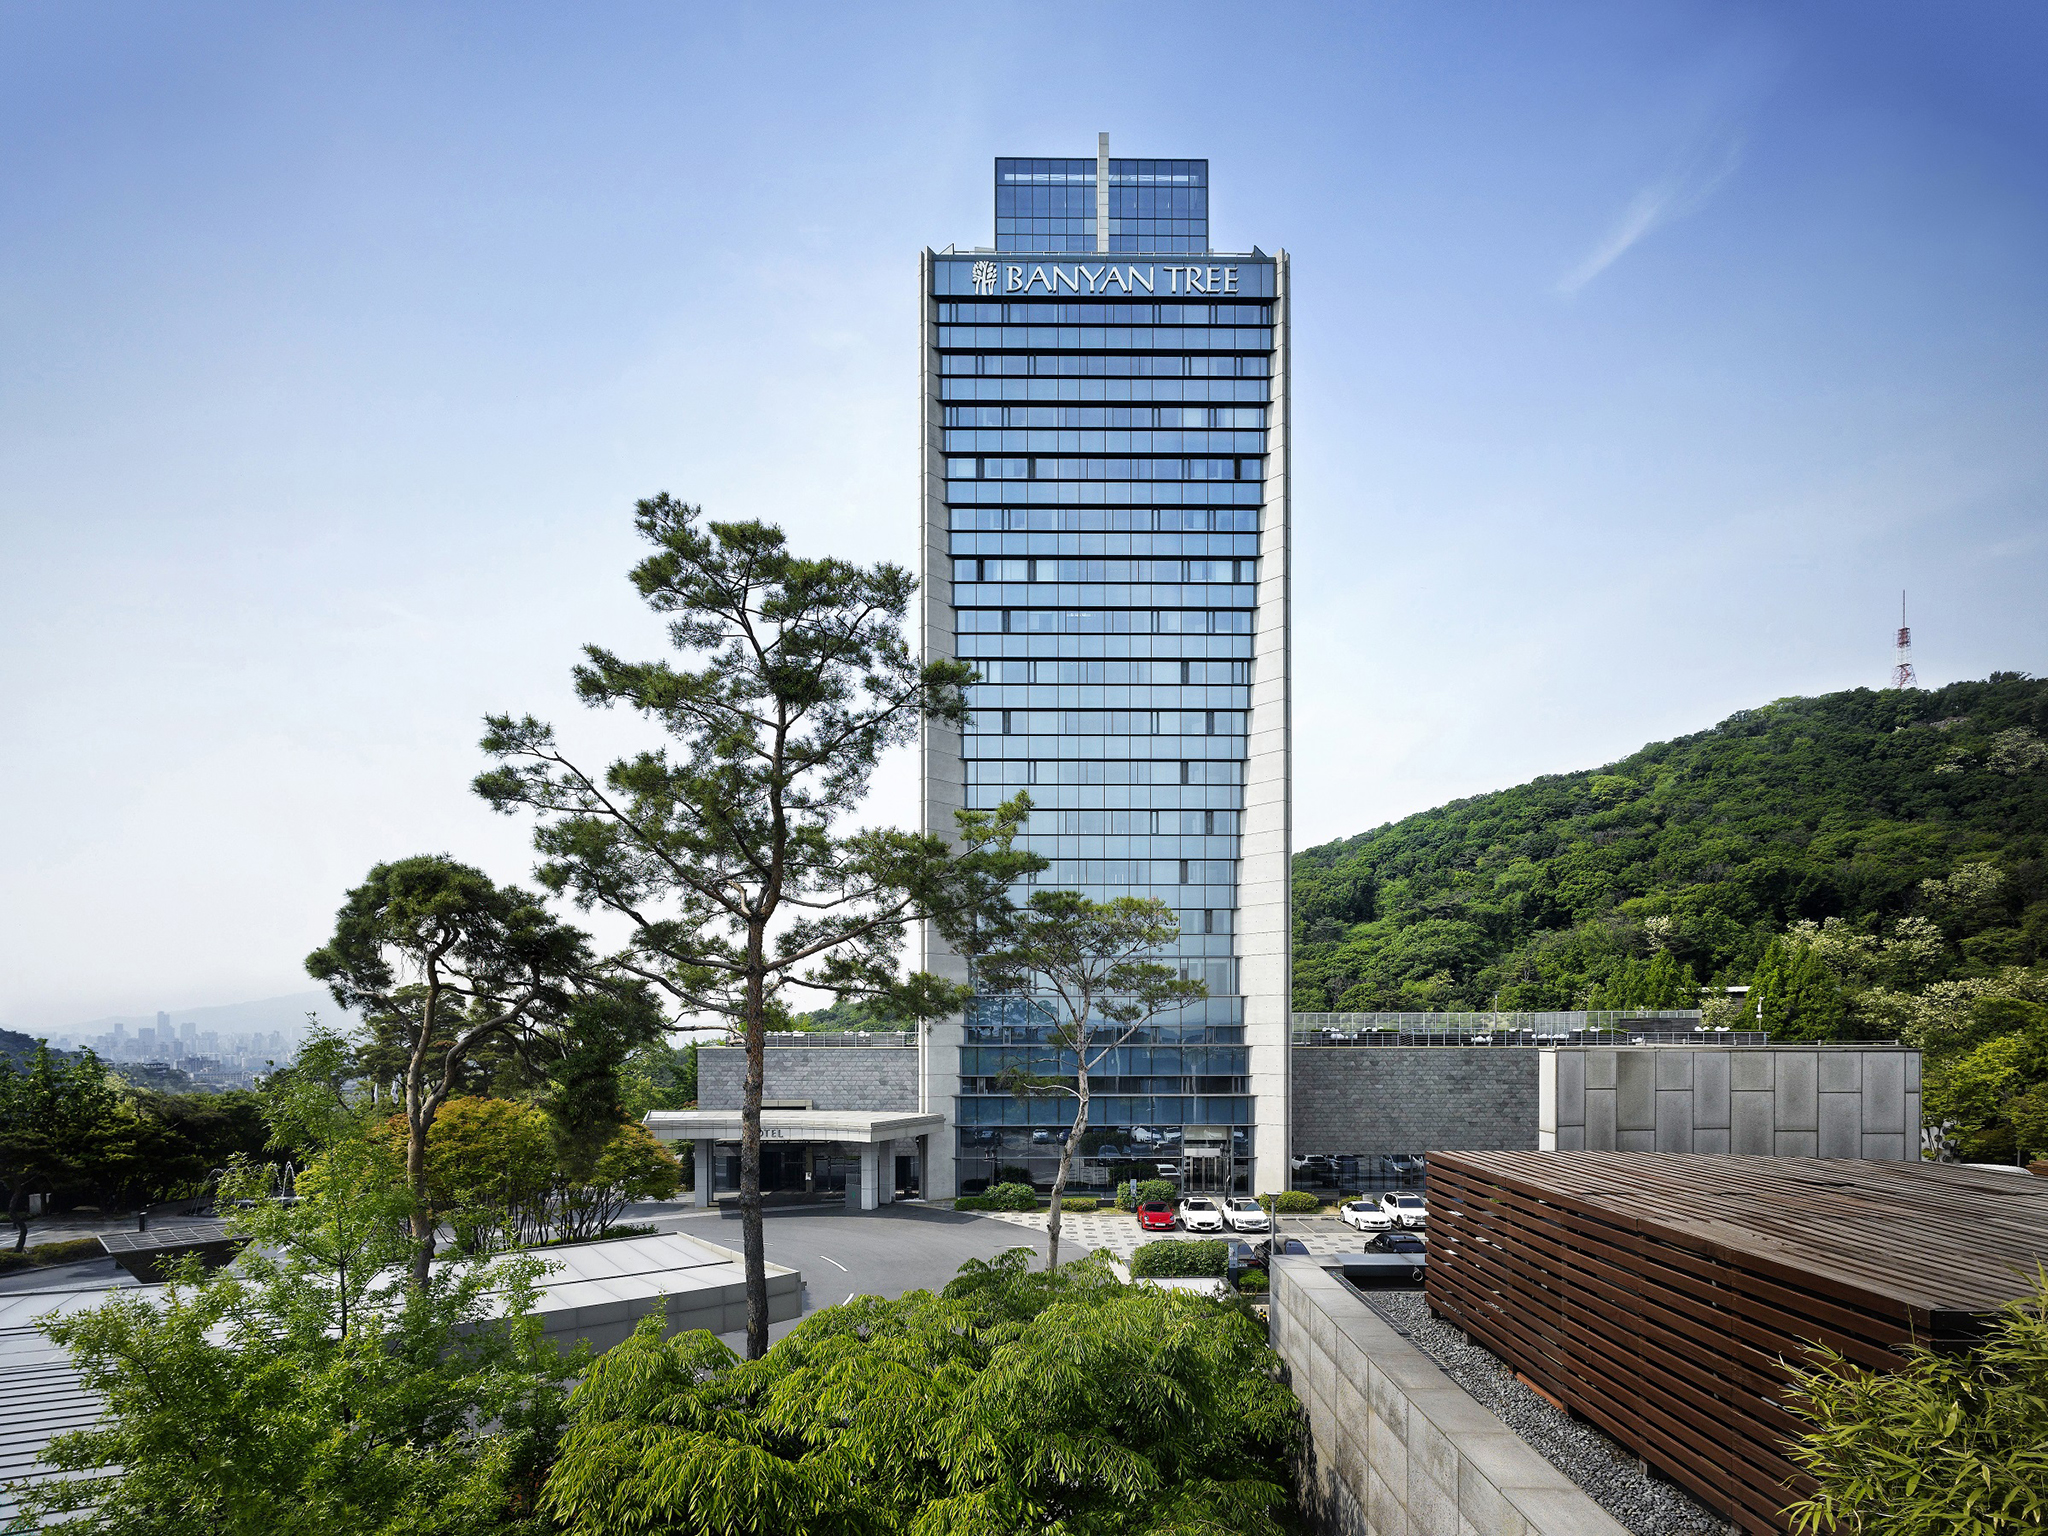 Hôtel - Banyan Tree Club & Spa Seoul